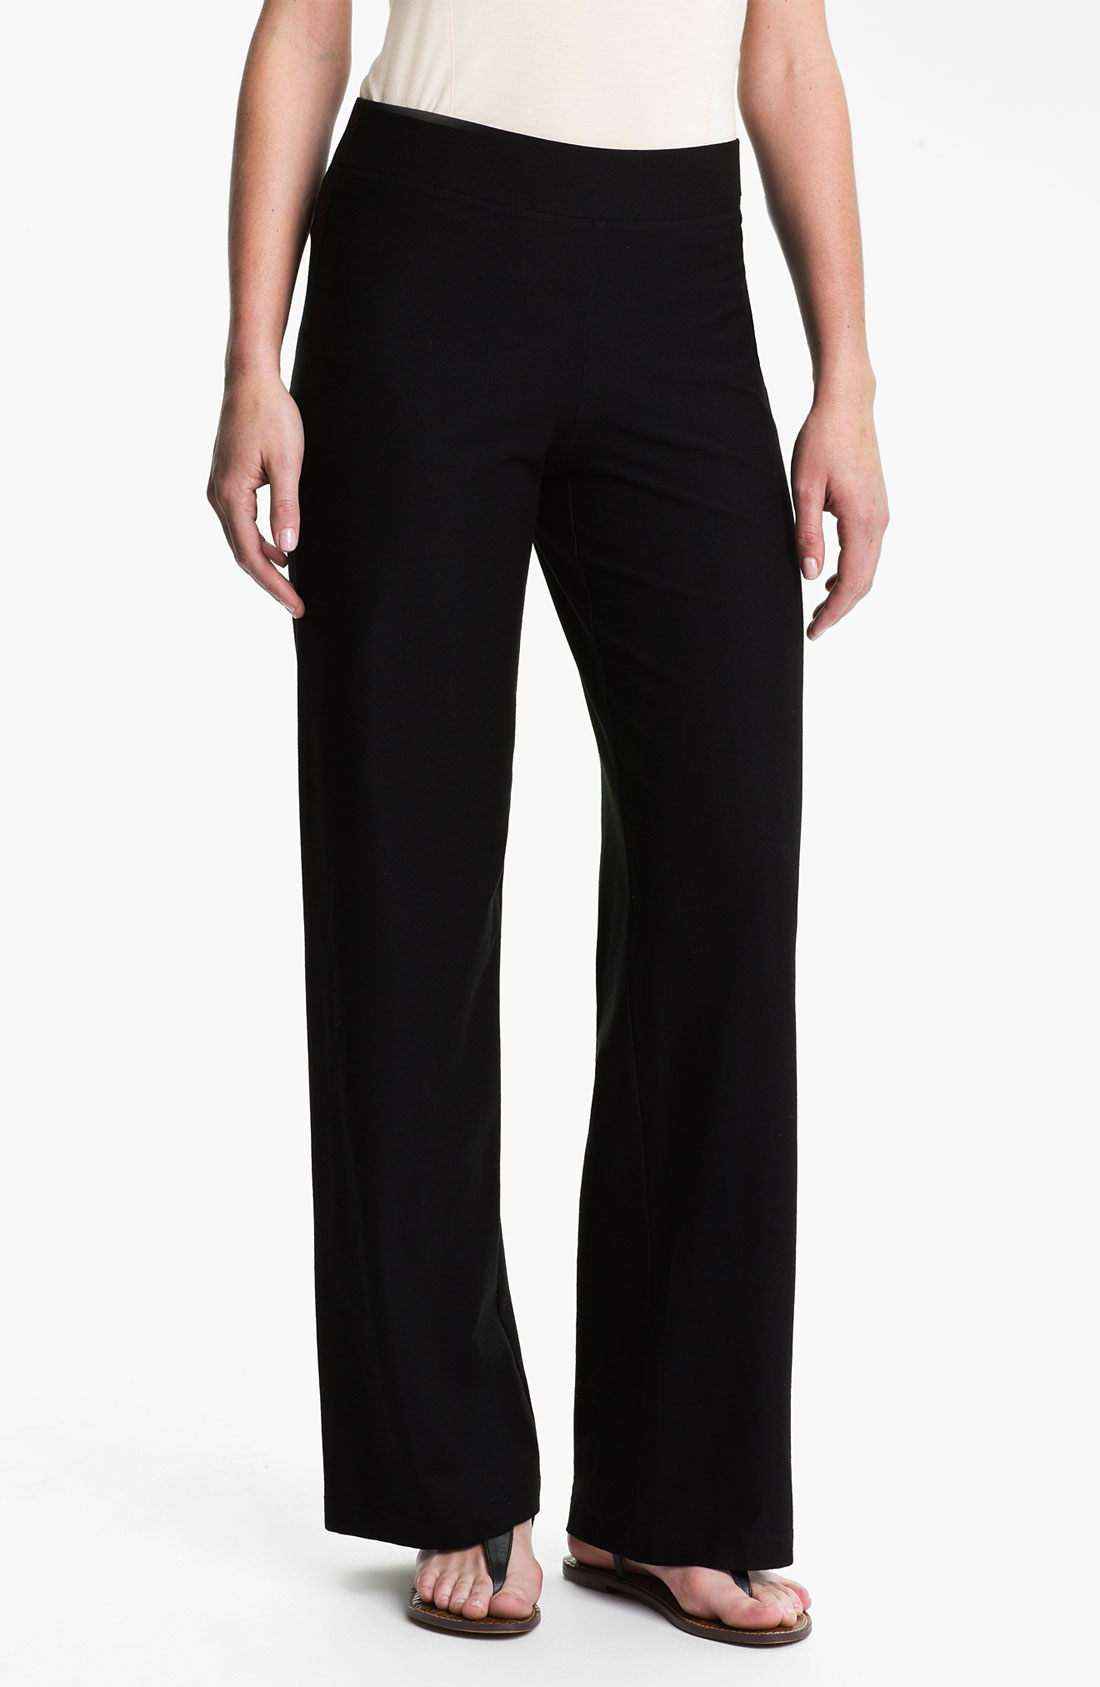 Try a trendy pair of women's wide leg jeans, available at Dillard's.